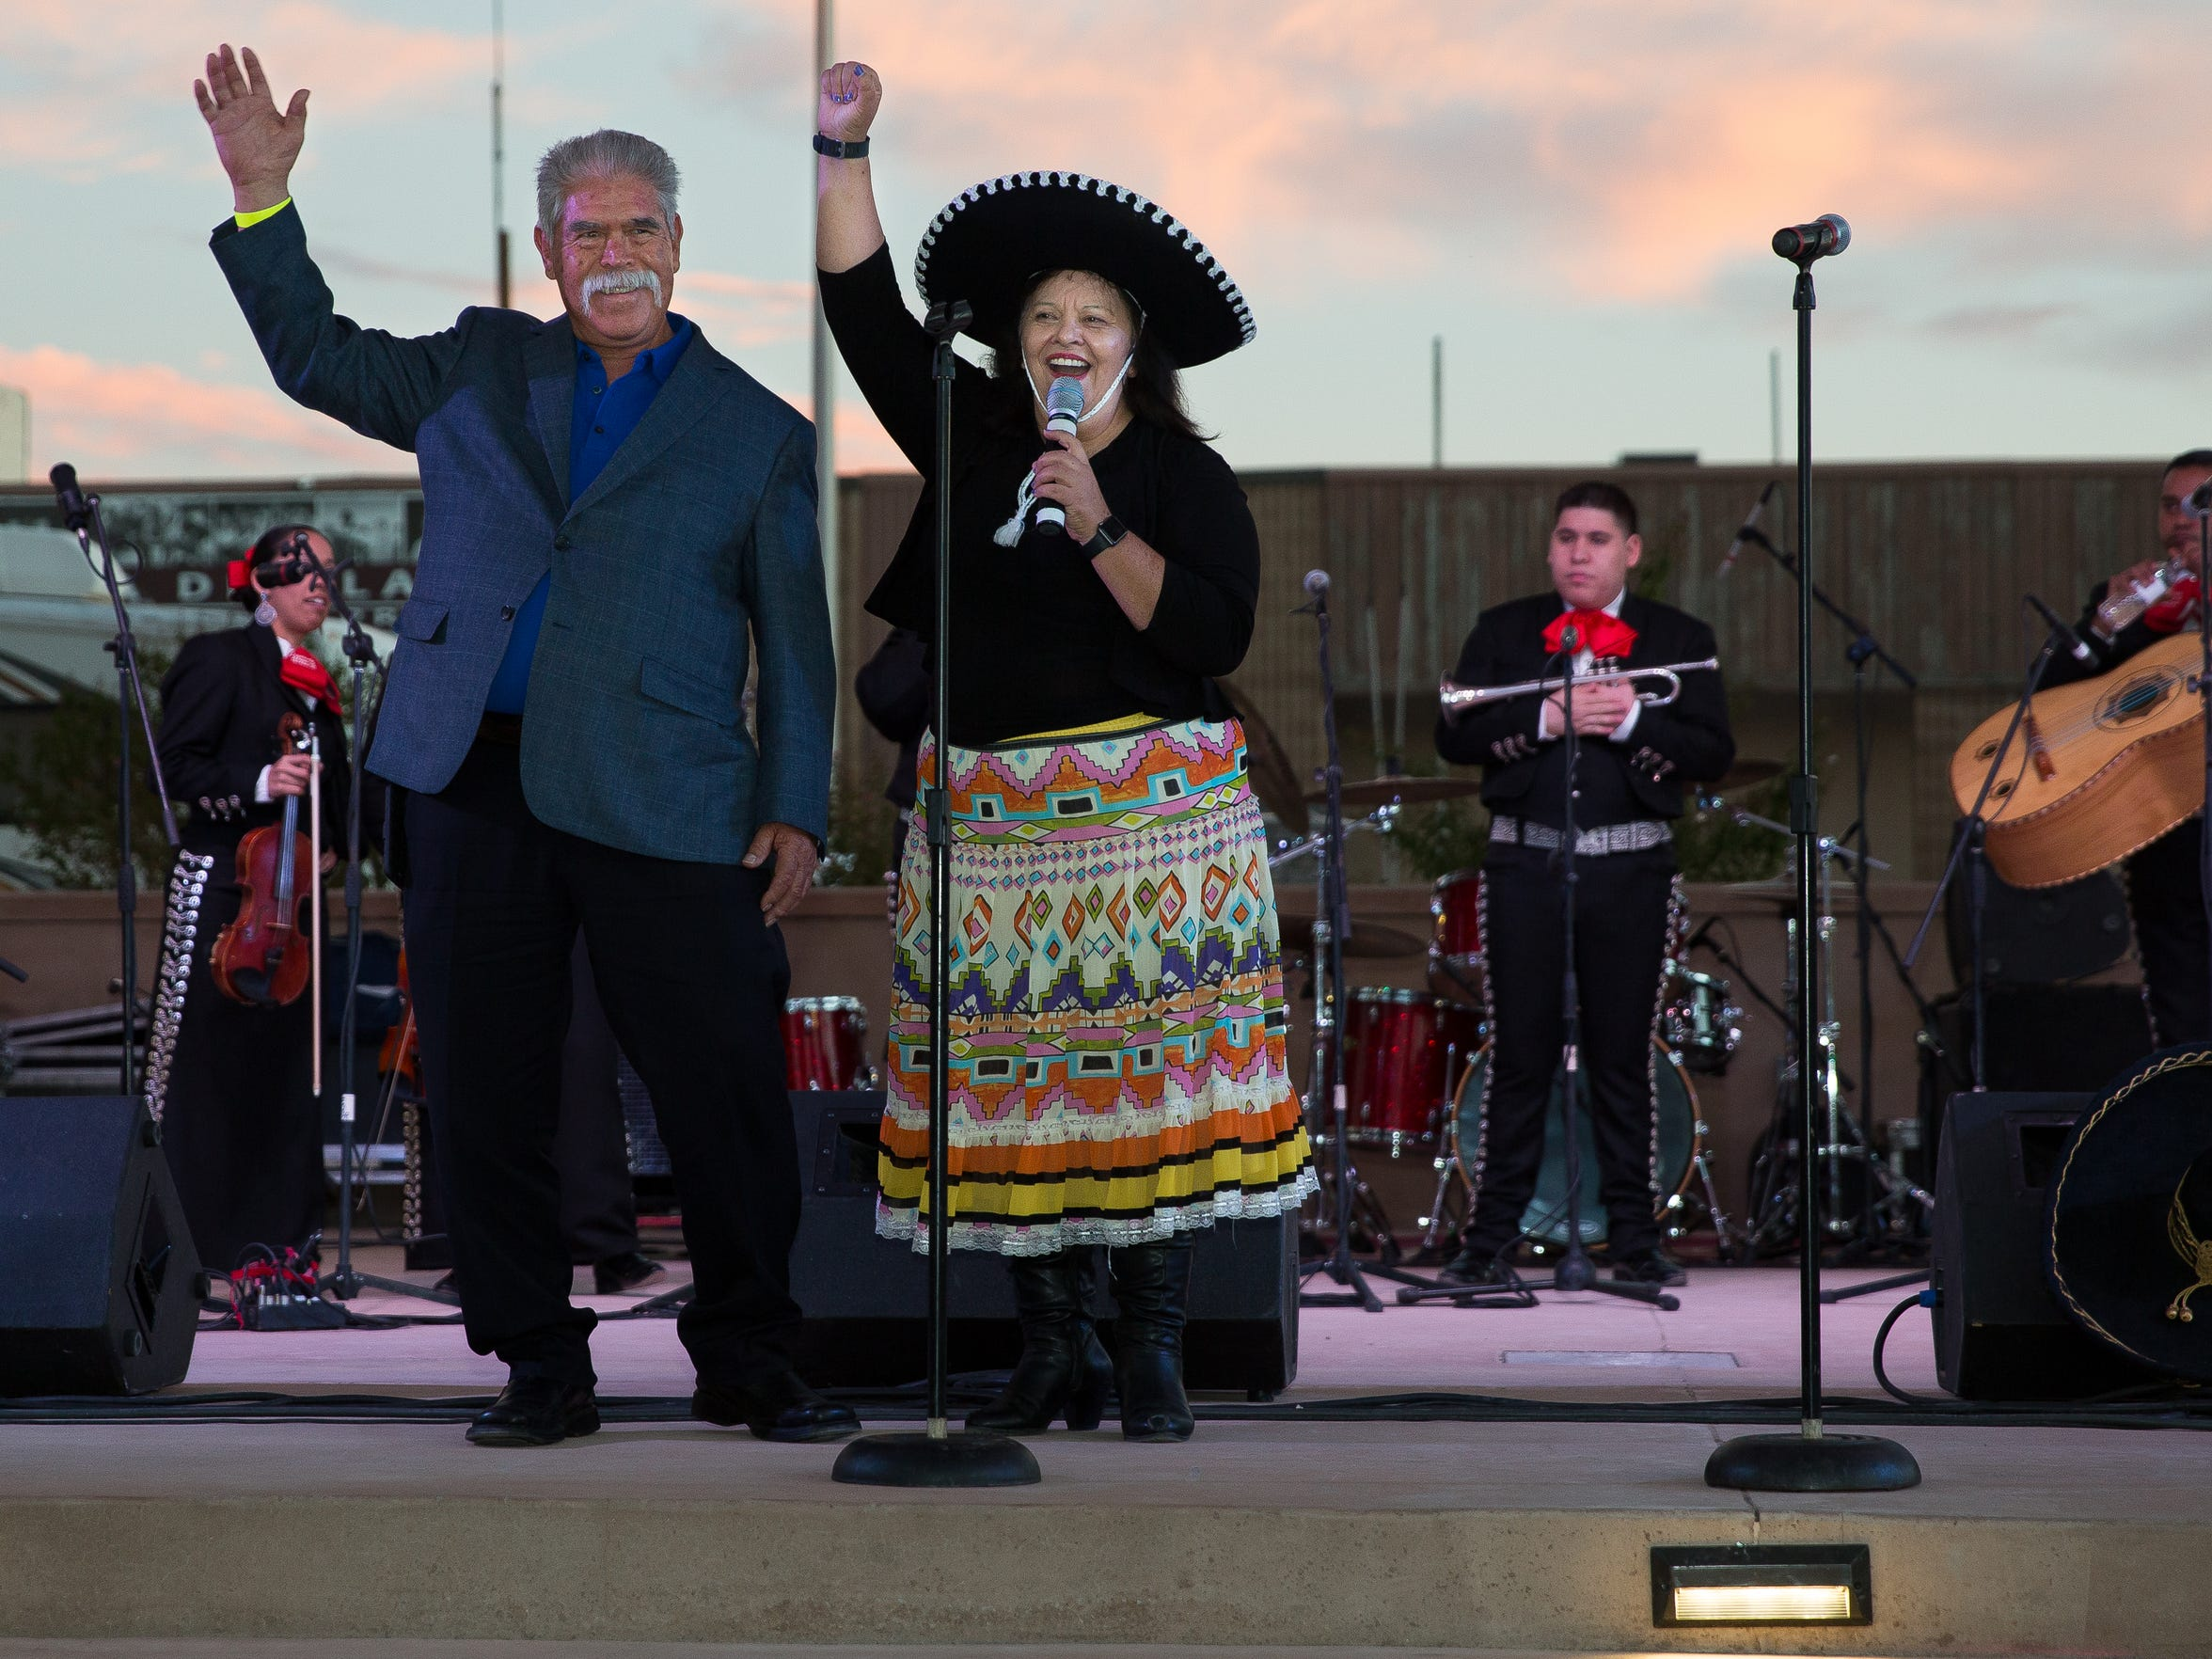 Roberto Estrada, left, and Executive Director of Cancer Aid Resource and Education (CARE) of Southern New Mexico Yoli Rigales Diaz cheer to the crowd, September 23, 2016, after announcing the Roberto's Enchilada Tasting Contest to be held on Sunday, September 25, 2016, at noon in part of The Big Event festivities.